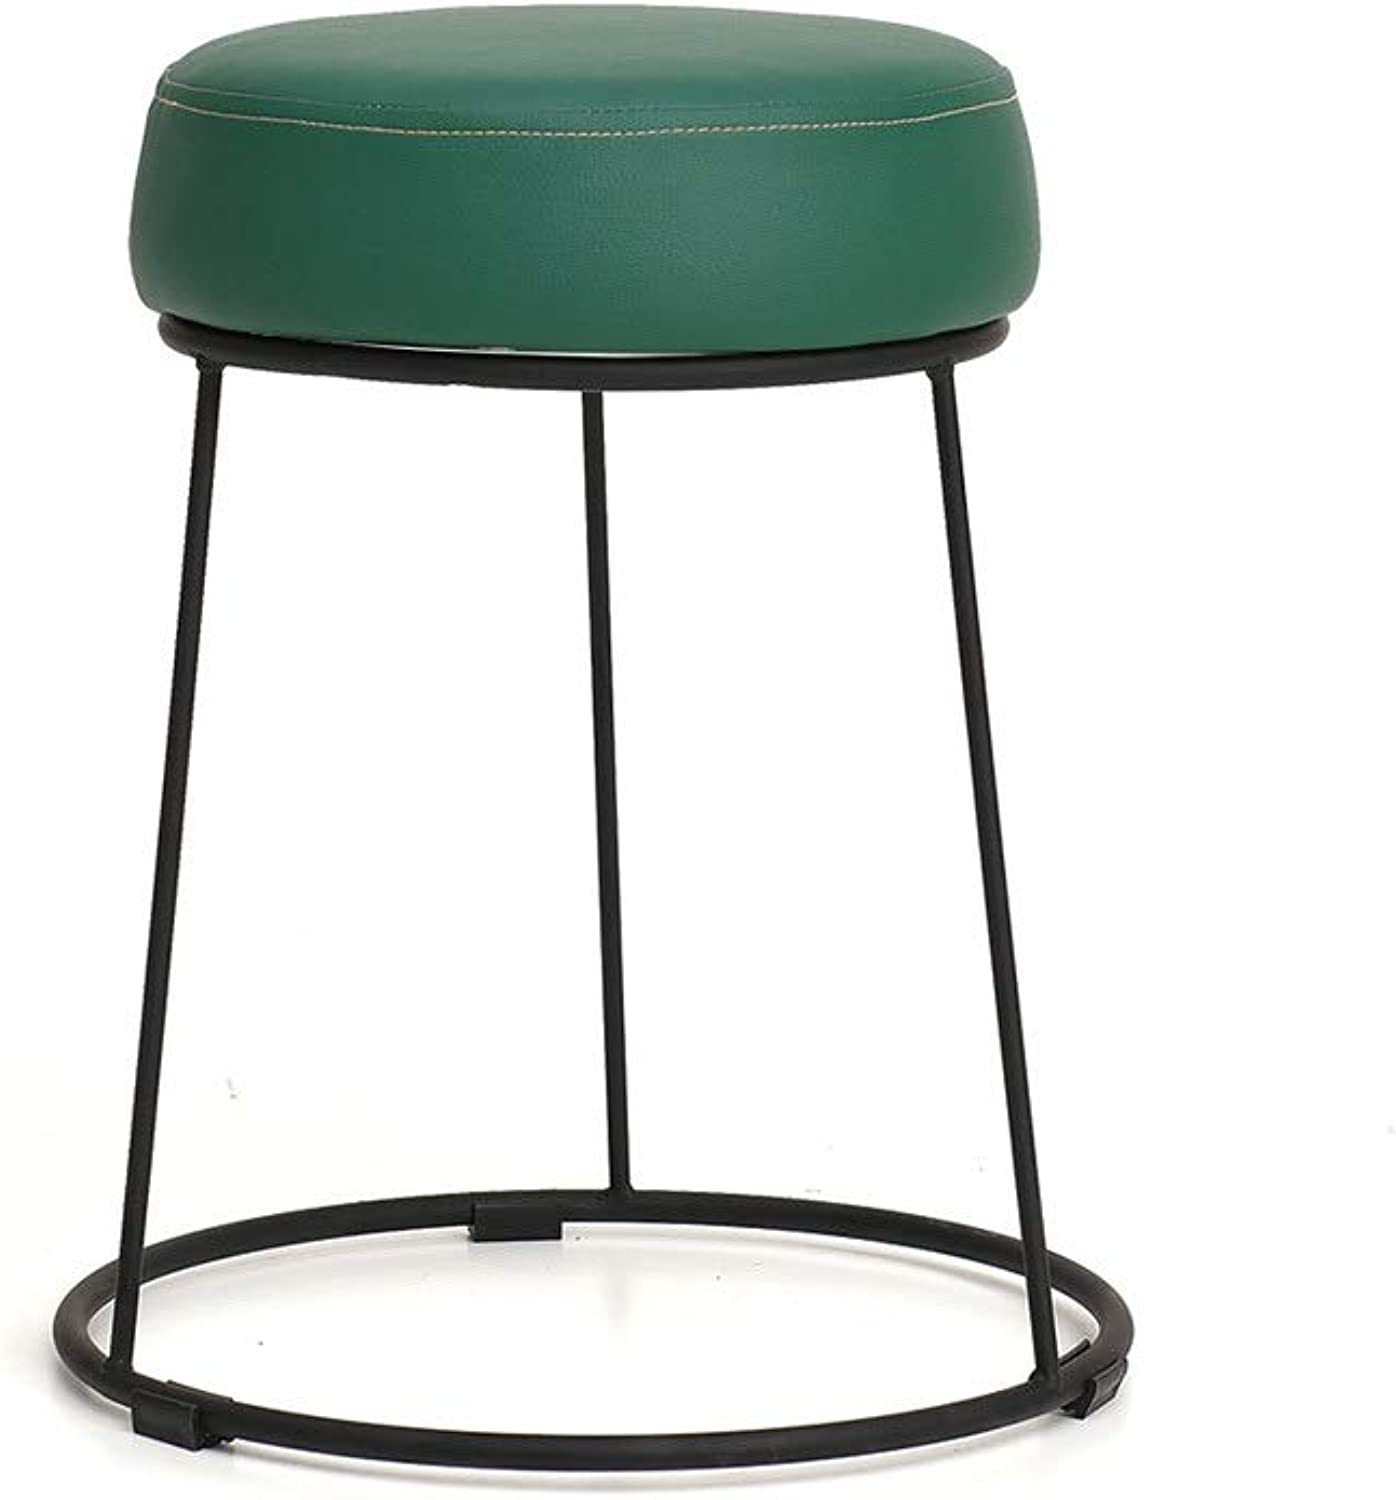 Dressing Stool, Dark Green Foot Stool Upholstered Footrest Iron Chair Bench Leather Seat Dresser Vanity Stool (color   Black)